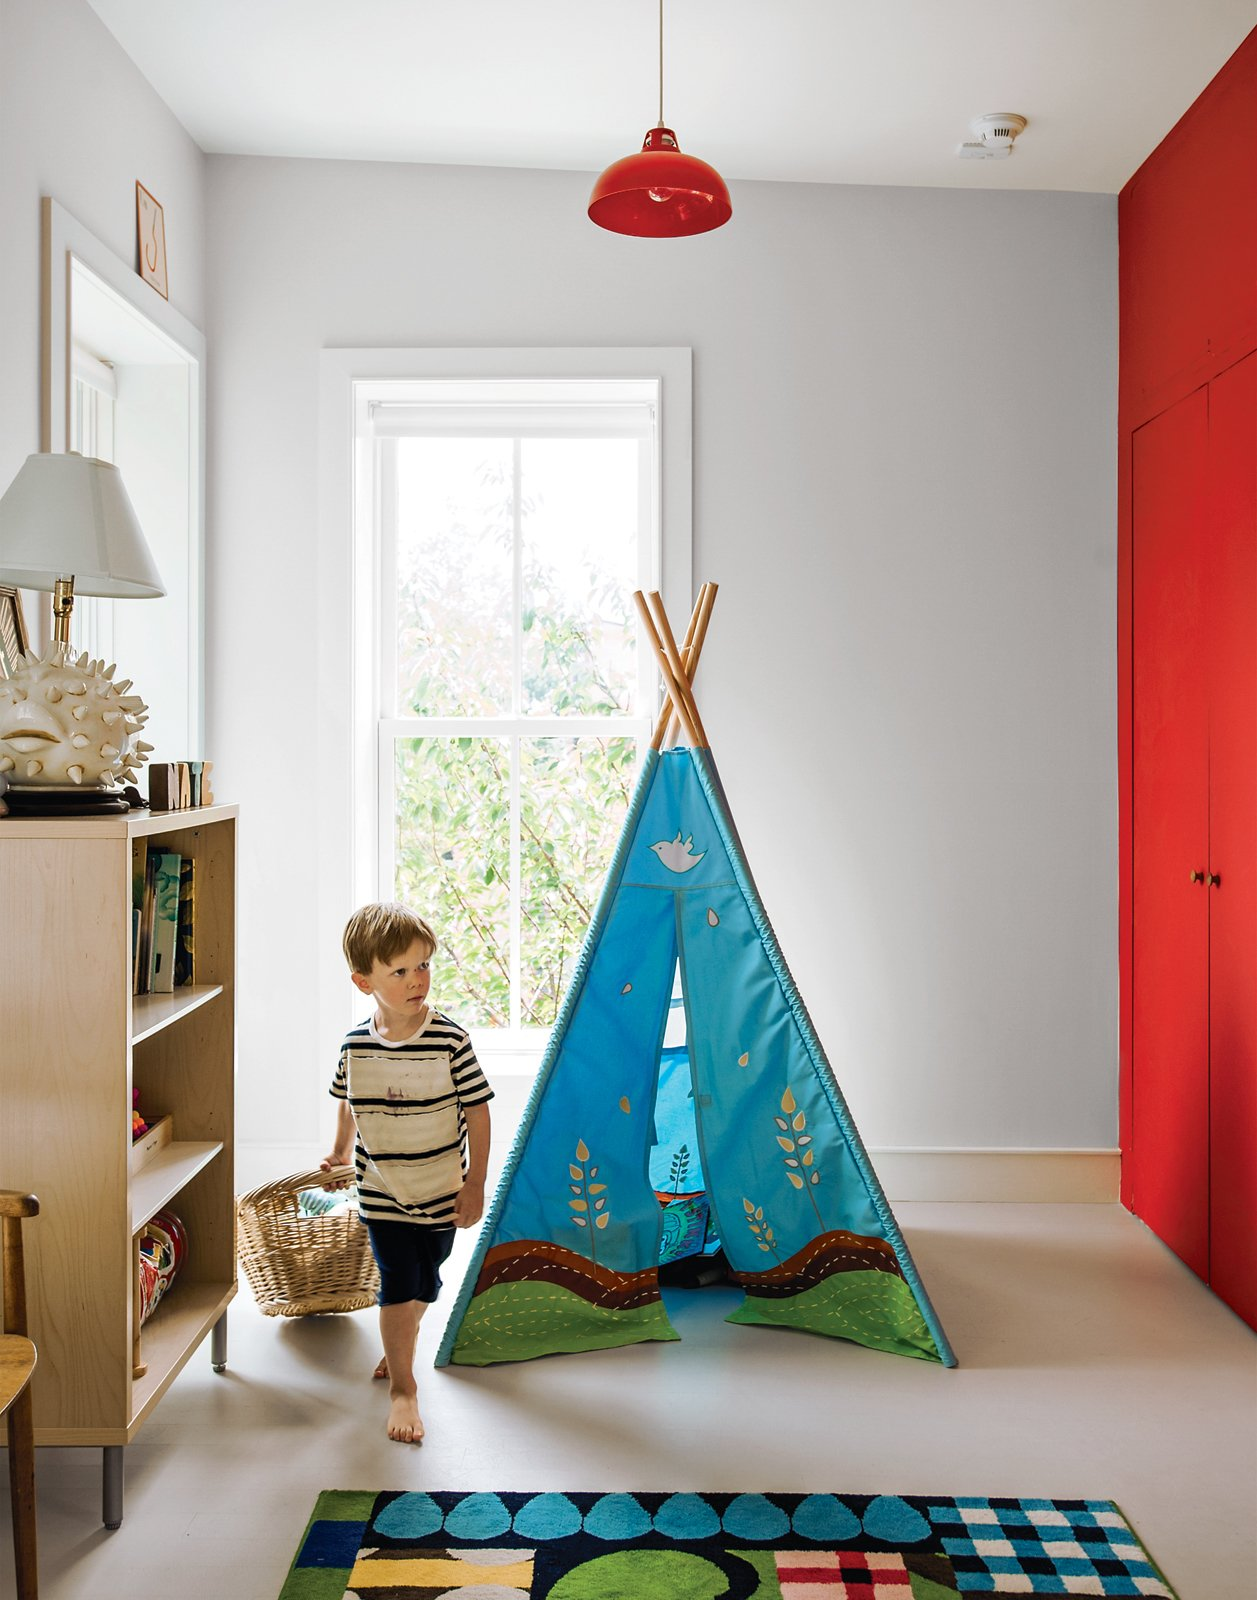 """Kids Room, Bedroom Room Type, Storage, Toddler Age, and Boy Gender Now three, Nate occupies coveted corner real estate in a third-floor room with a treetop-level view. """"It's a great space,"""" Casale says, """"although it is the noisiest room in the house because of the street. But by now he's so used to sleeping through all of the sounds, I don't think it bothers him."""" The brightness of the space is enhanced by an accent wall coated in fire engine–red chalkboard paint (Benjamin Moore Natura flat-finish paint in Vermillion mixed with unsanded grout) that Nate can scribble on—as soon as his parents get around to telling him that it's allowed. A matching red pendant lamp from the Soho shop Kiosk hangs above a six-foot-tall teepee by Dexton Kids.  Photo 8 of 9 in The Brownstone Baked to Perfection"""